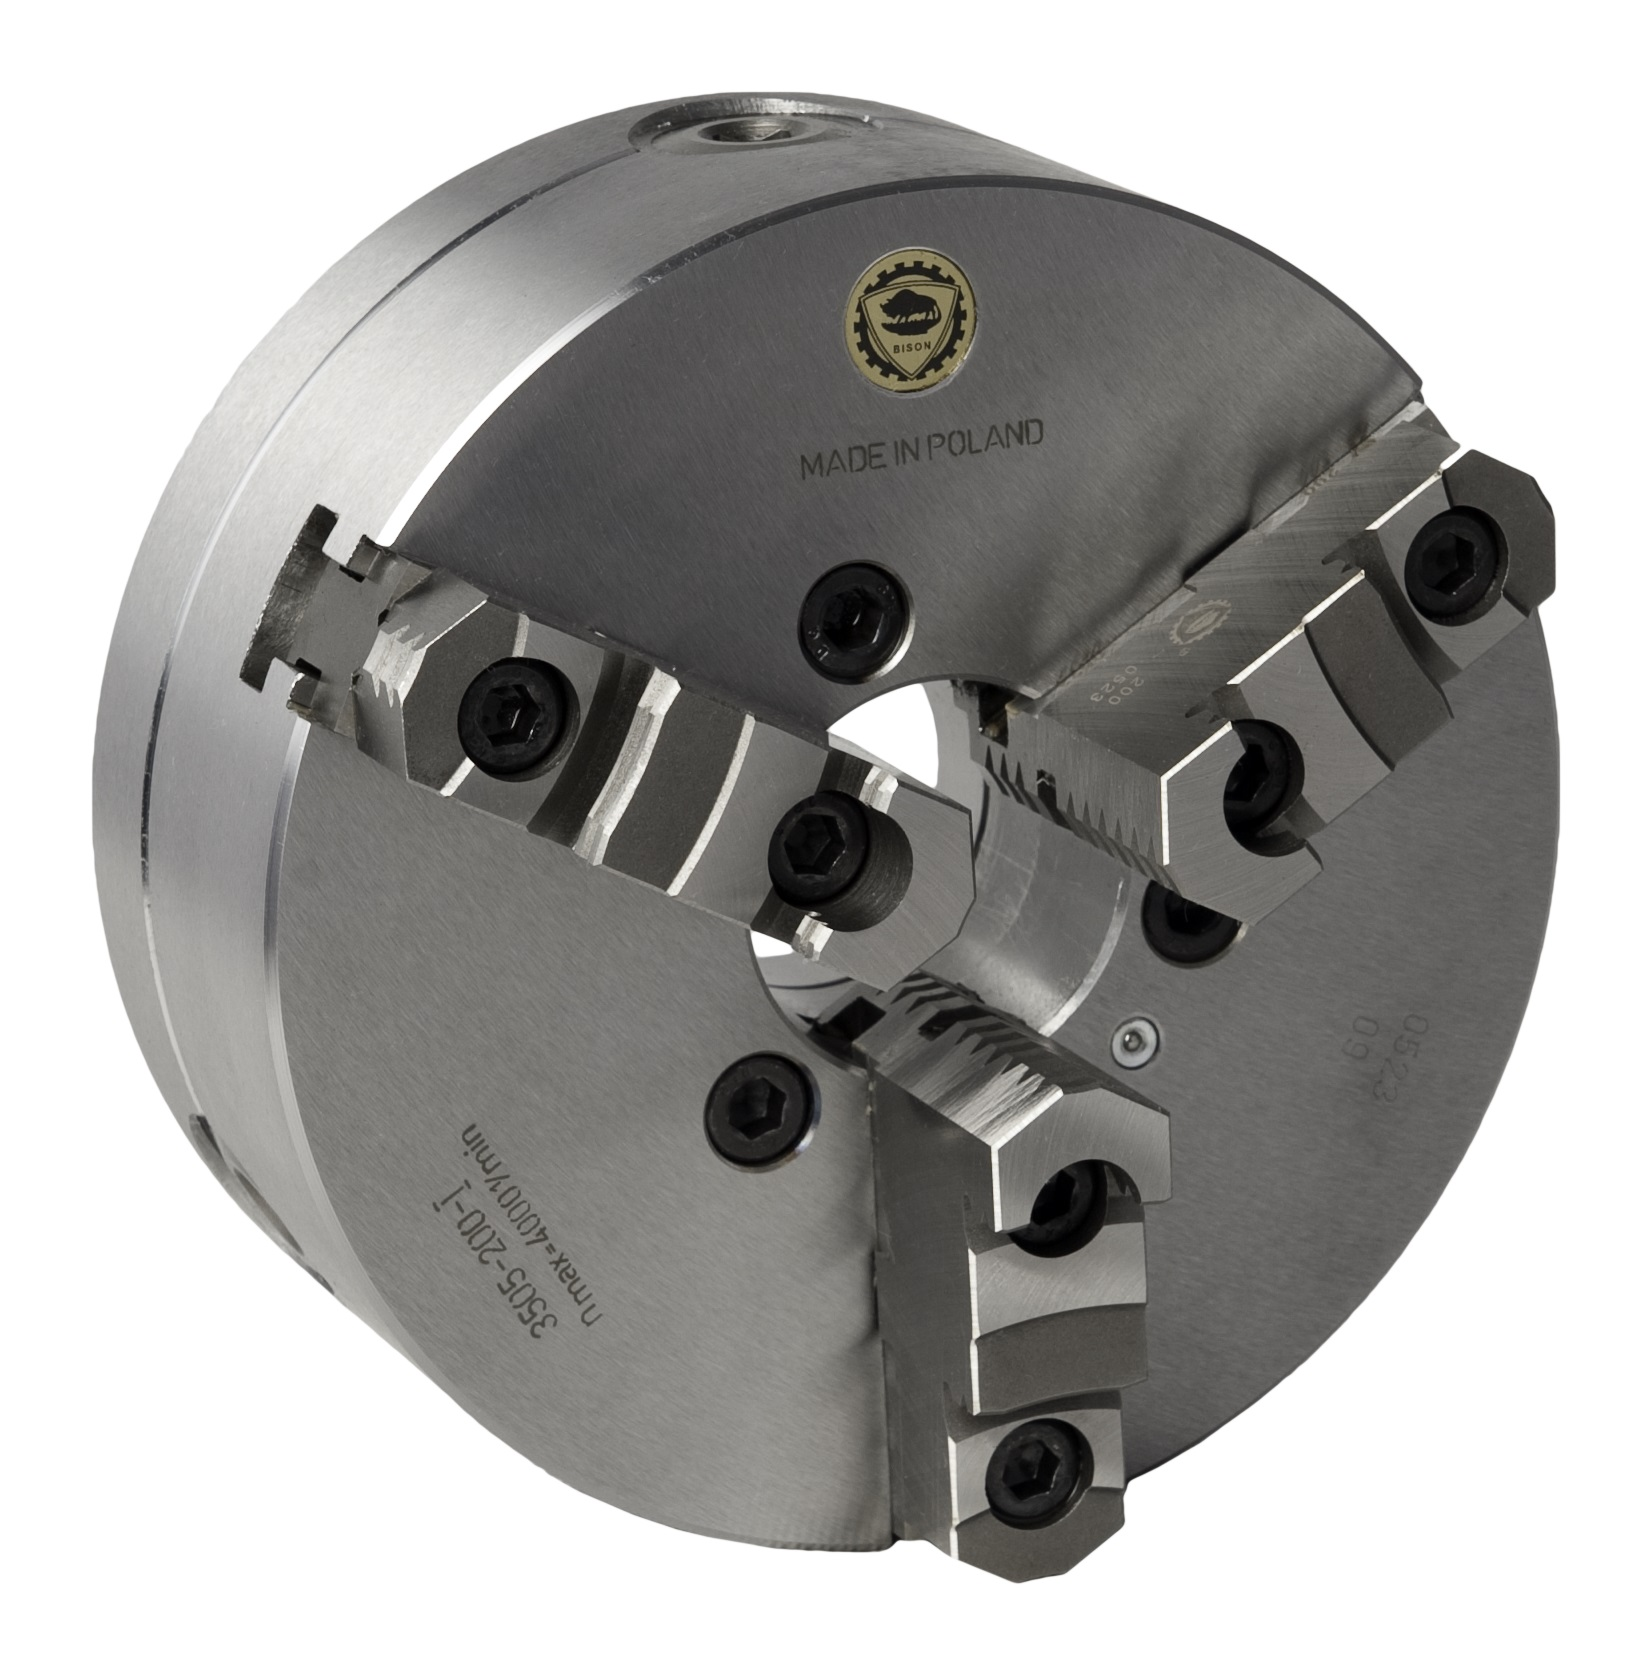 Bison 3505-P Premium 3-Jaw Steel Self-Centring Scroll Chuck with Plain Back Mounting - DIN 6350.